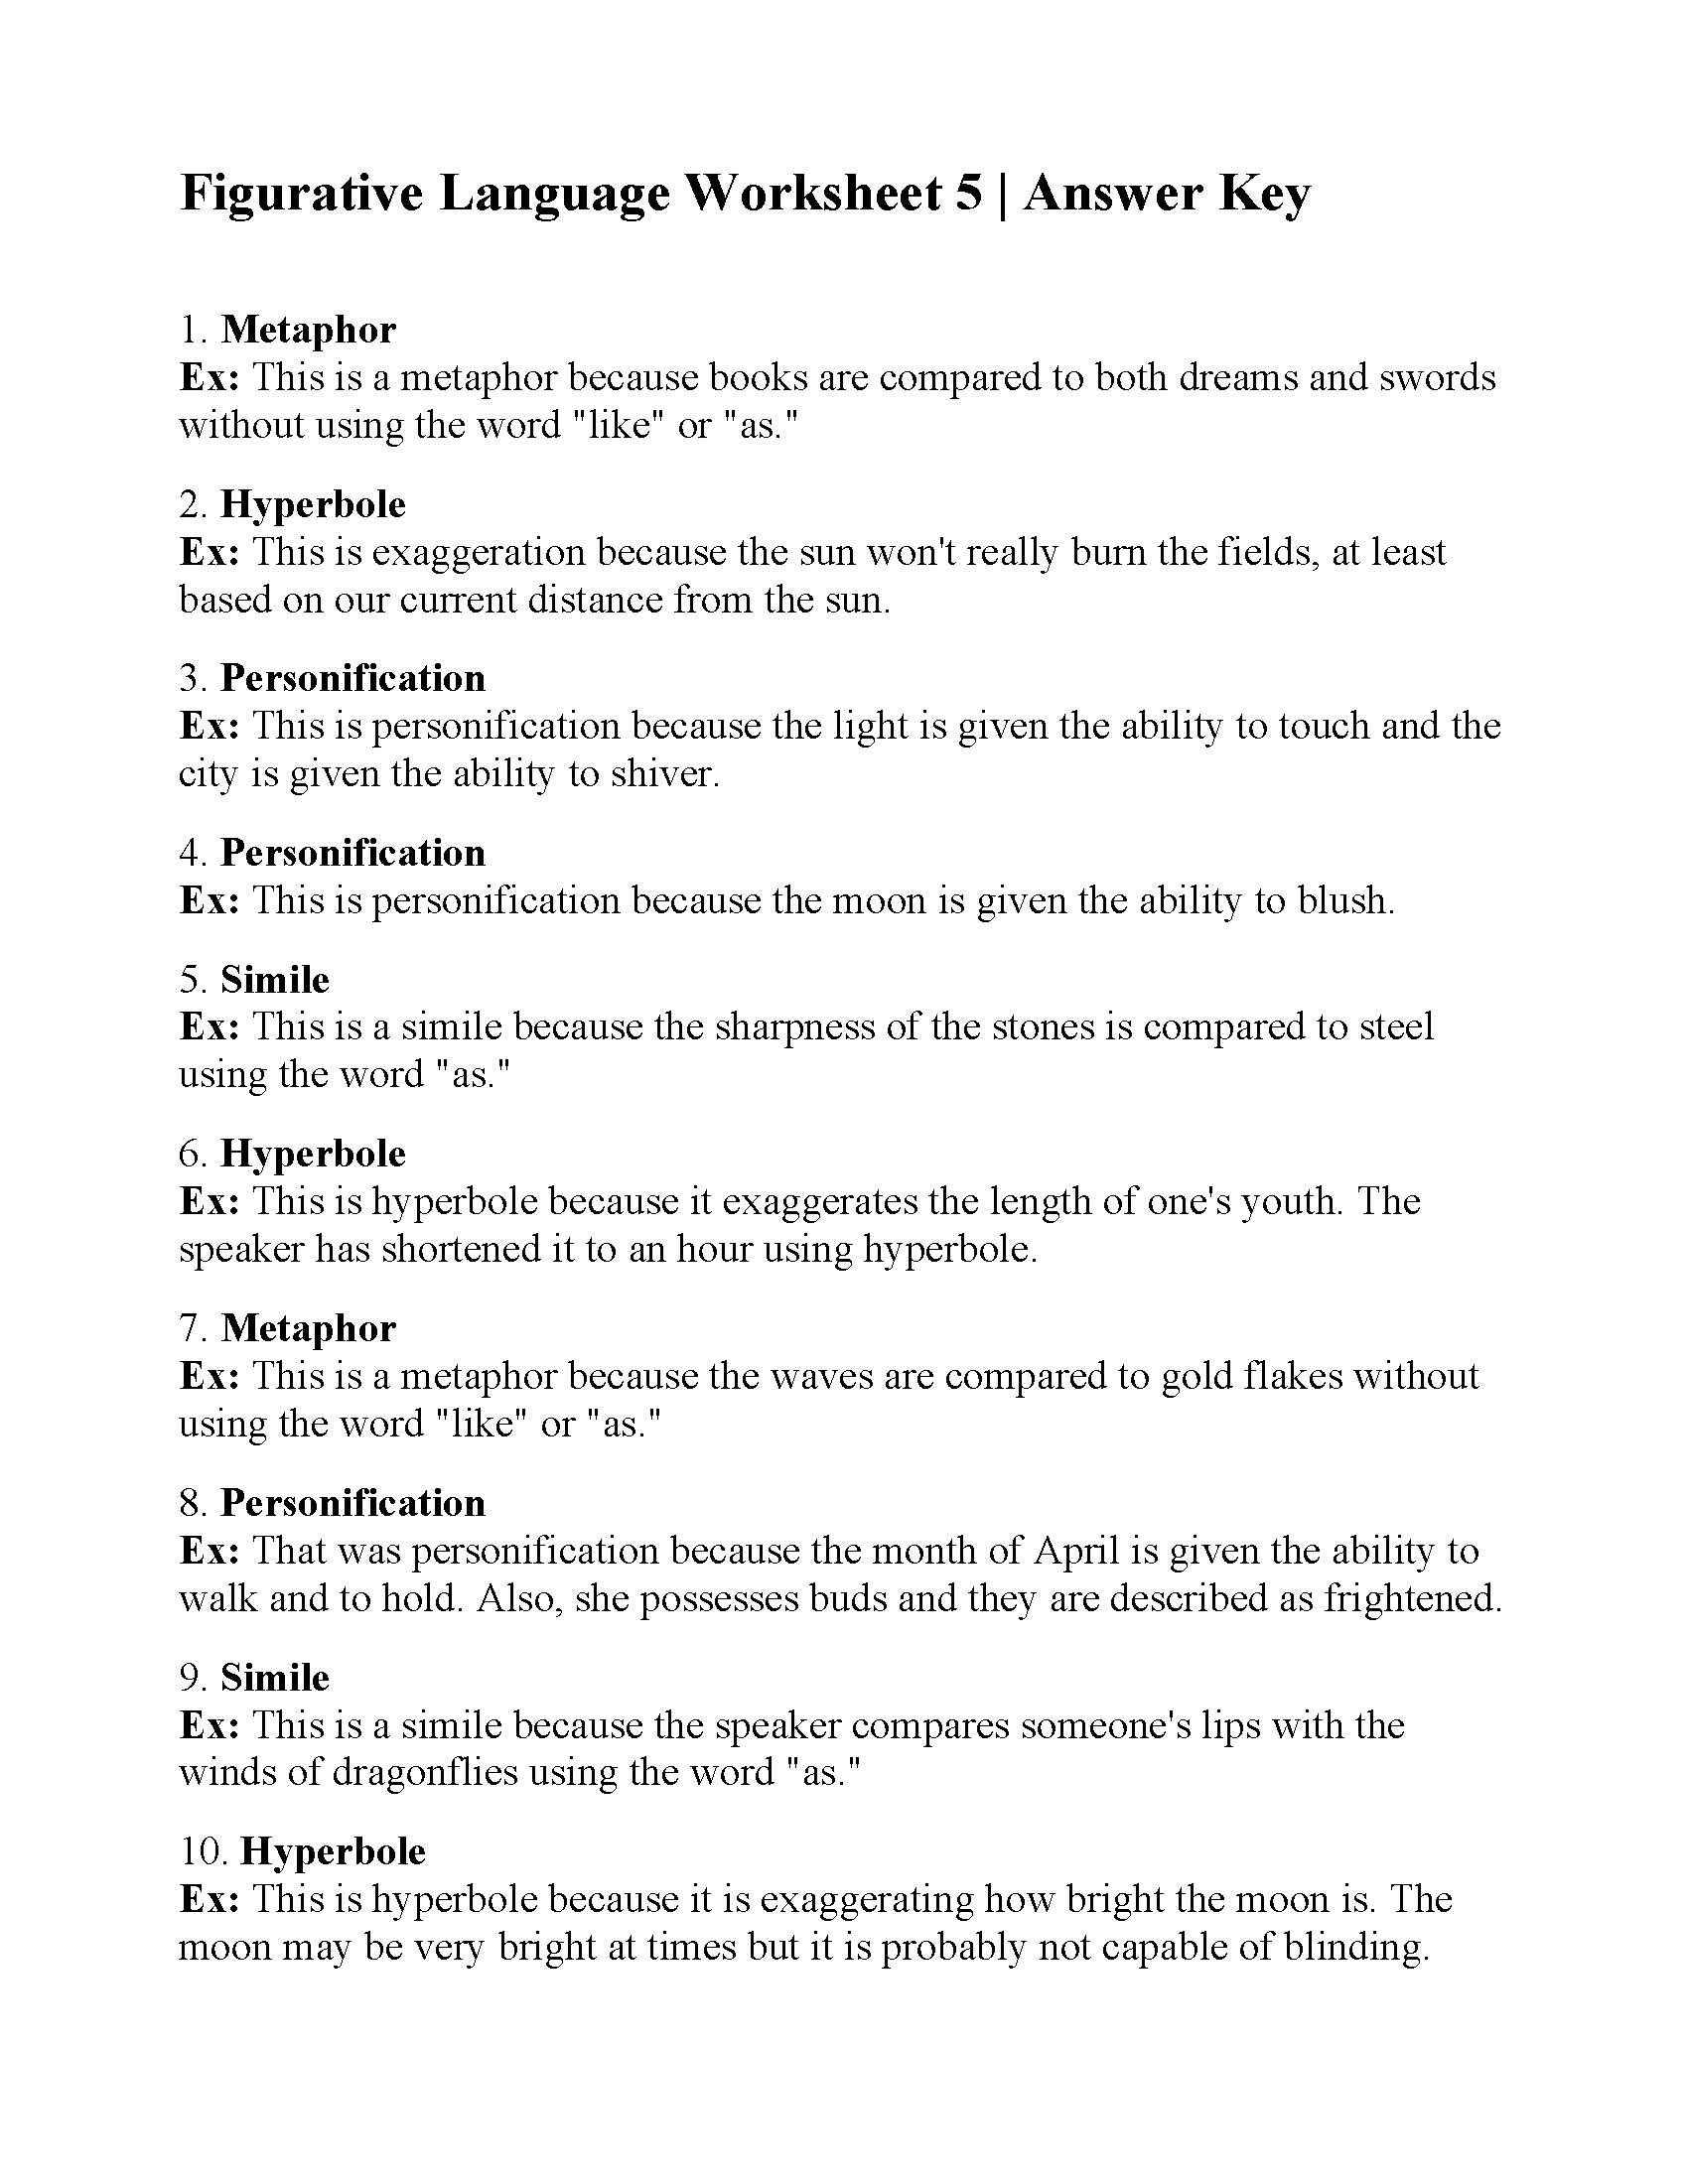 Figurative Language Worksheet 5th Grade Math Textbooks for Elementary School Line Worksheets for